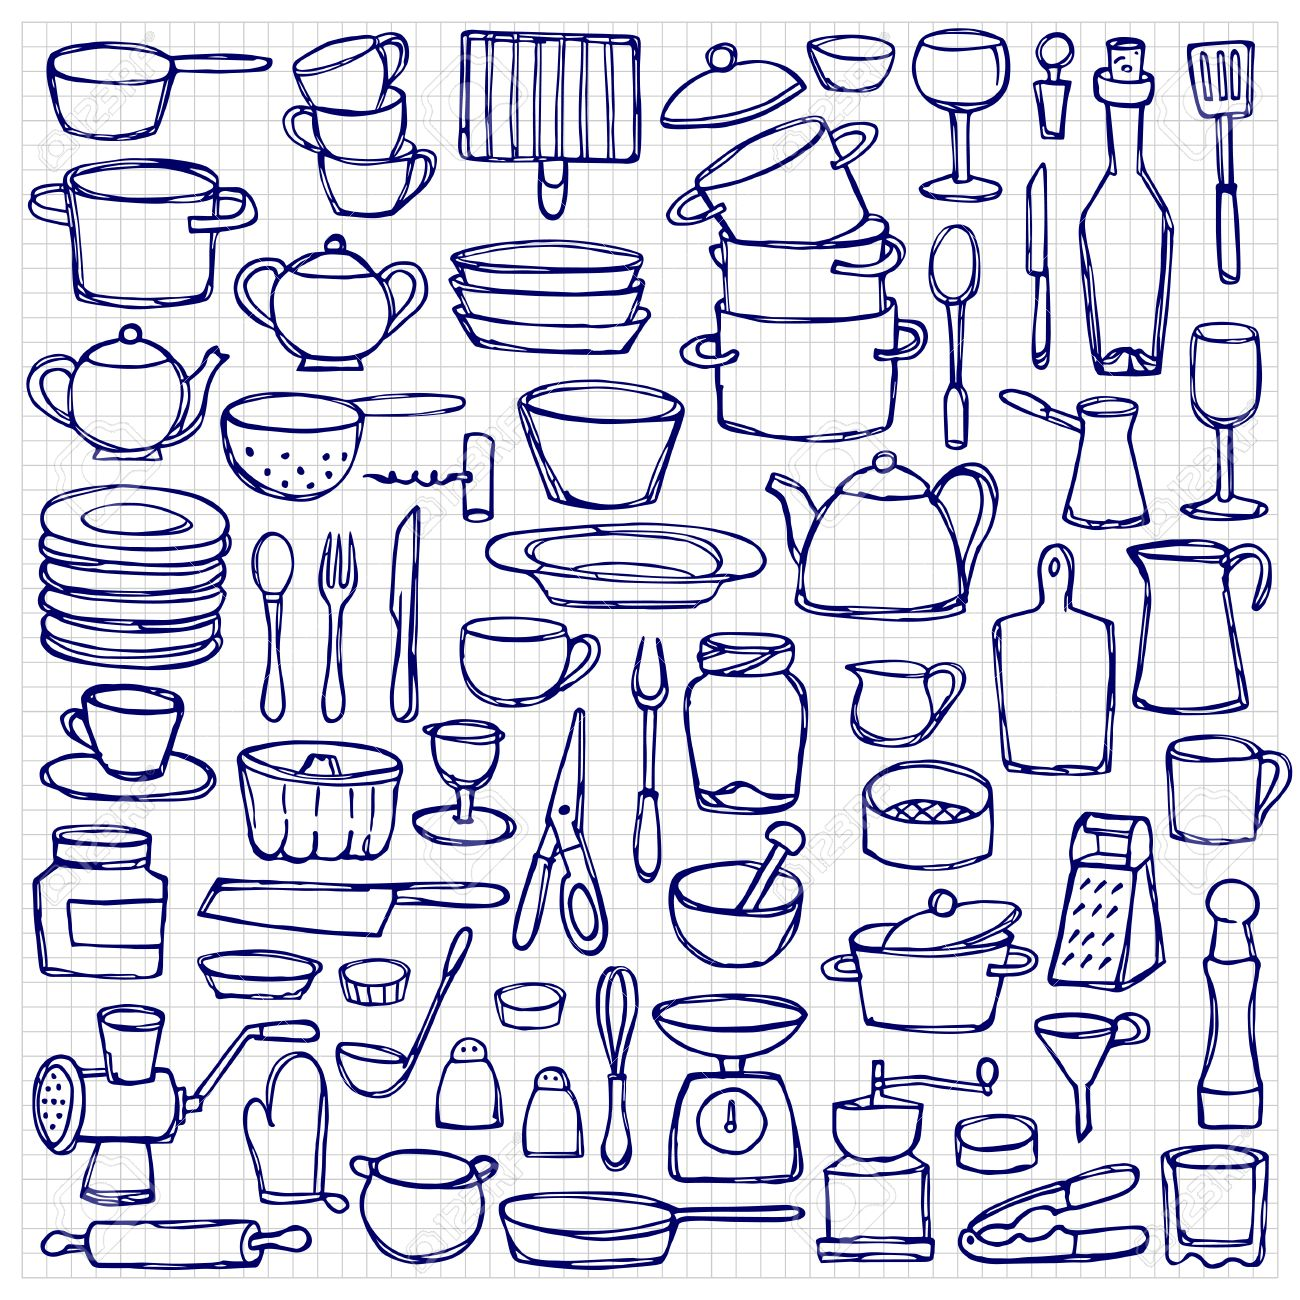 Kitchen Doodles Coloring Page Sketch Of Objects And Equipment On Squared Paper Stock